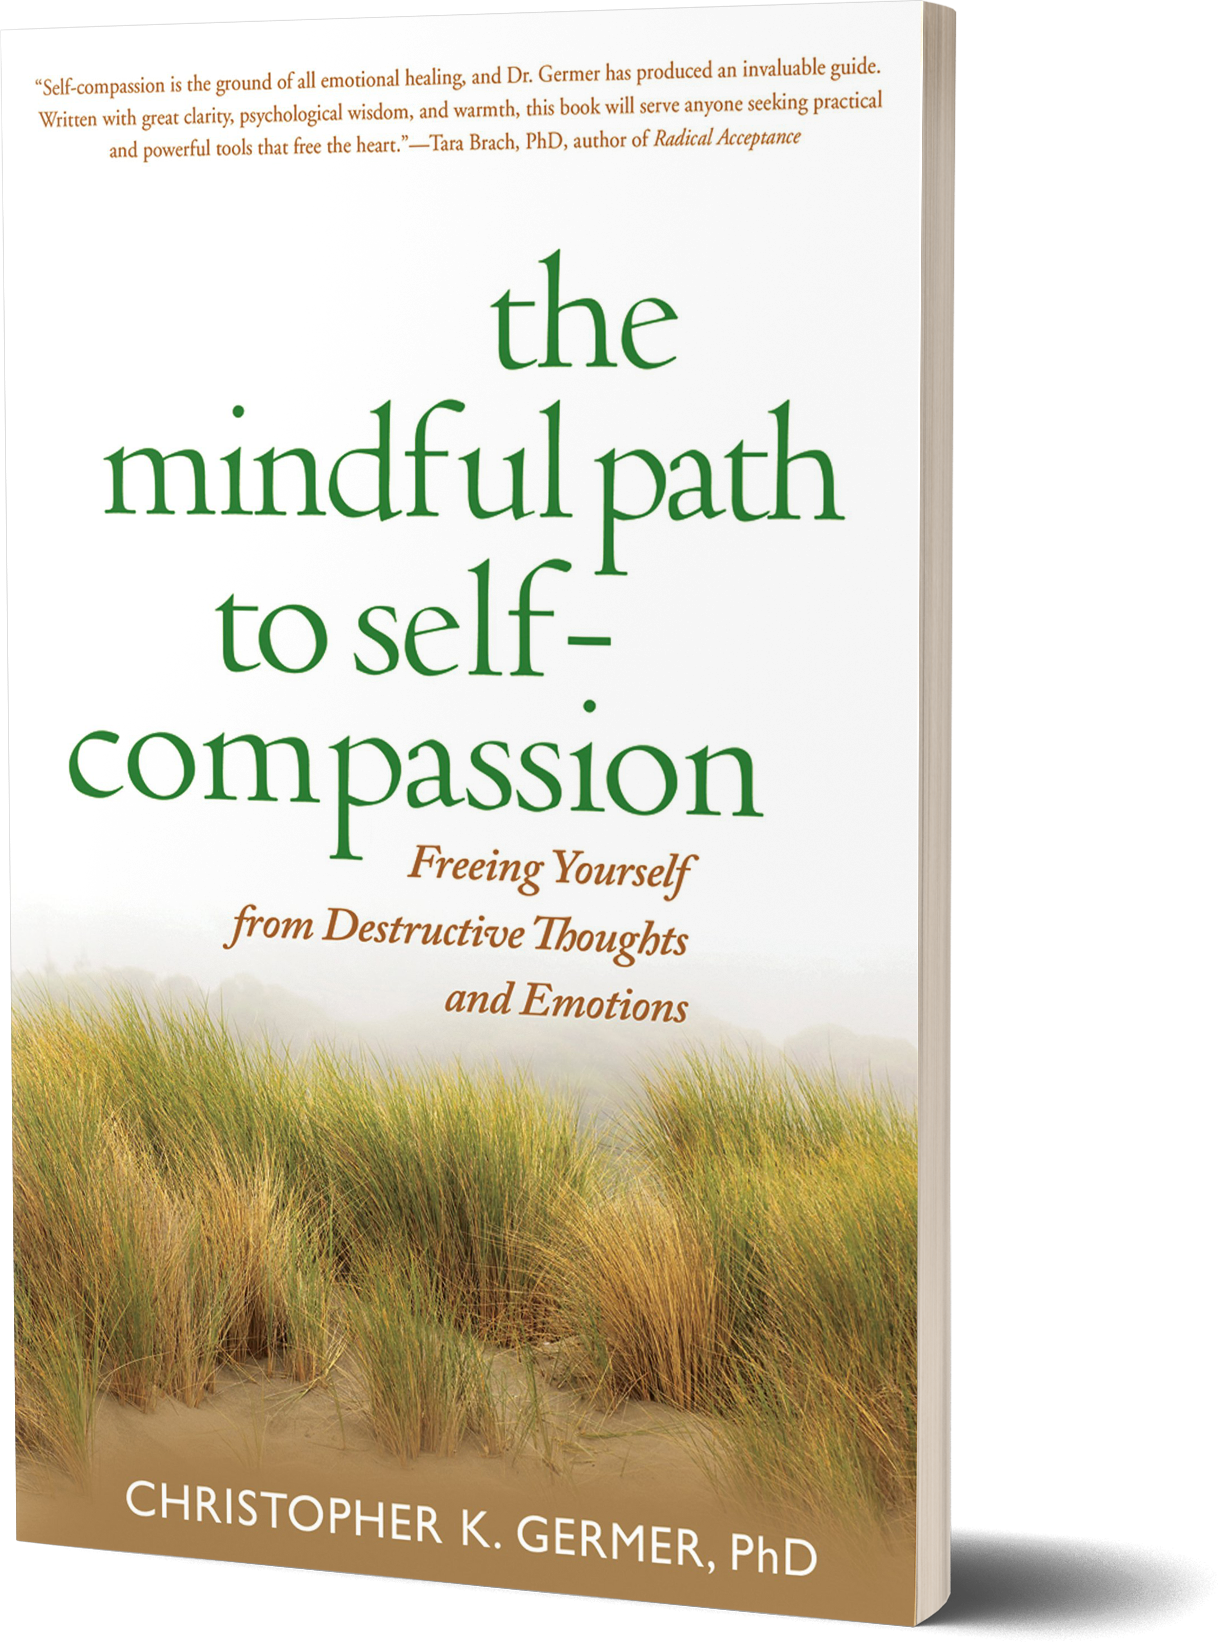 The Mindful Path to Self-Compassion- Freeing Yourself from Destructive Thoughts and Emotions by Christopher K. Germer, Ph.D.png